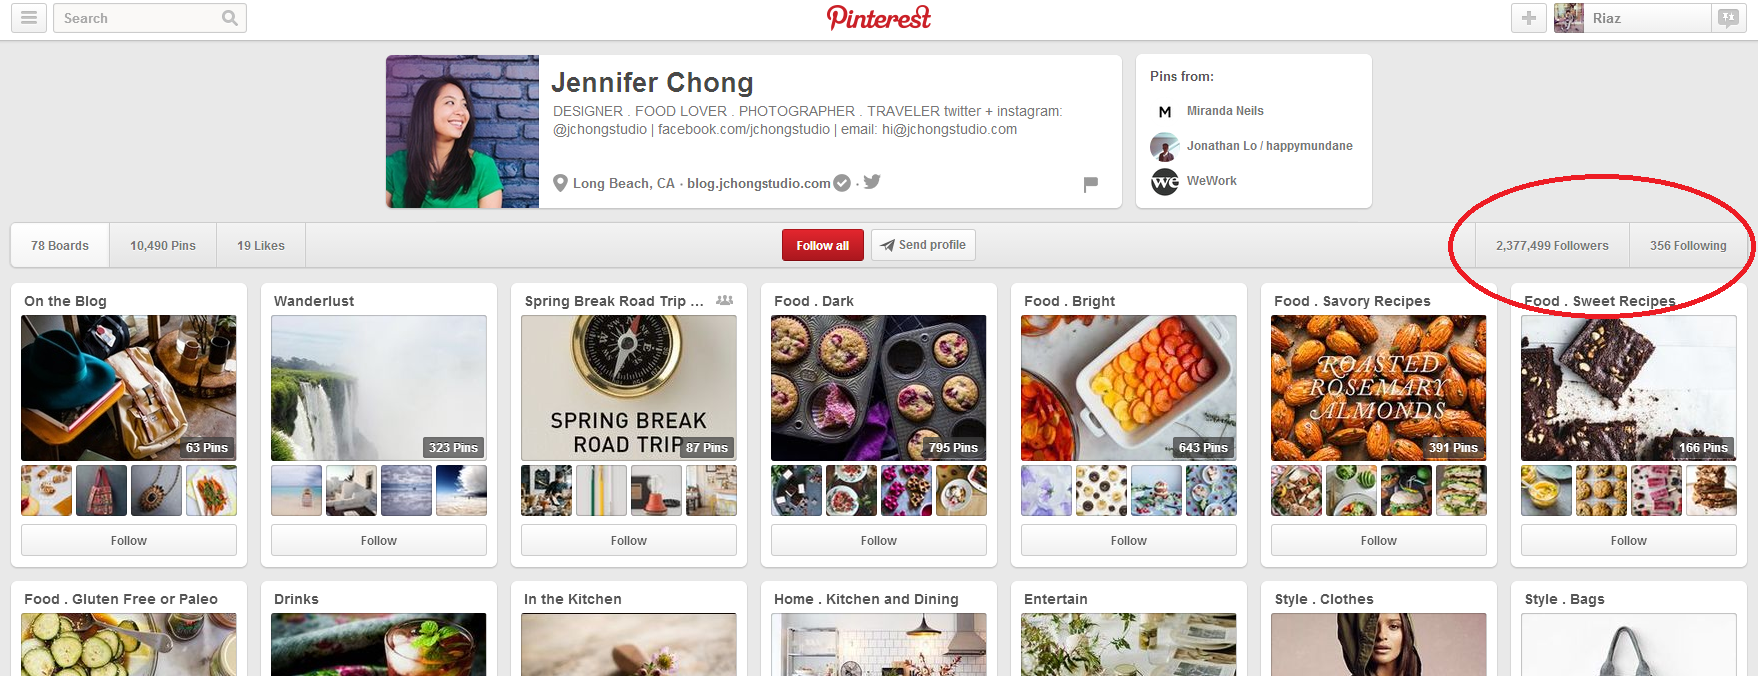 Jennifer Chong's Pinterest Account